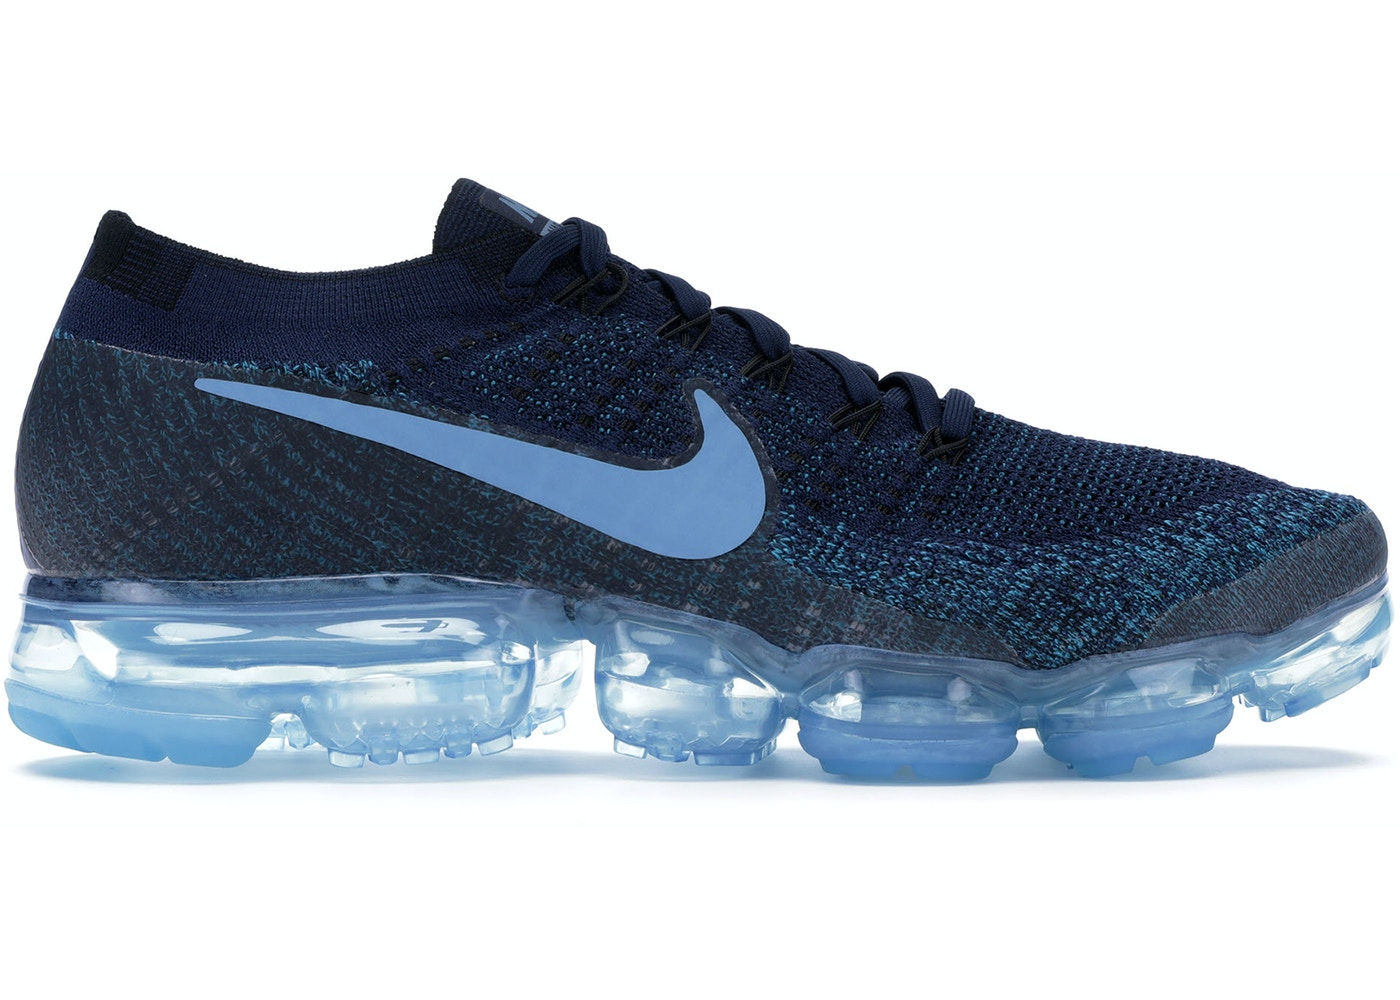 2684991b8b Air VaporMax JD Sports Ice Blue - 849558-405